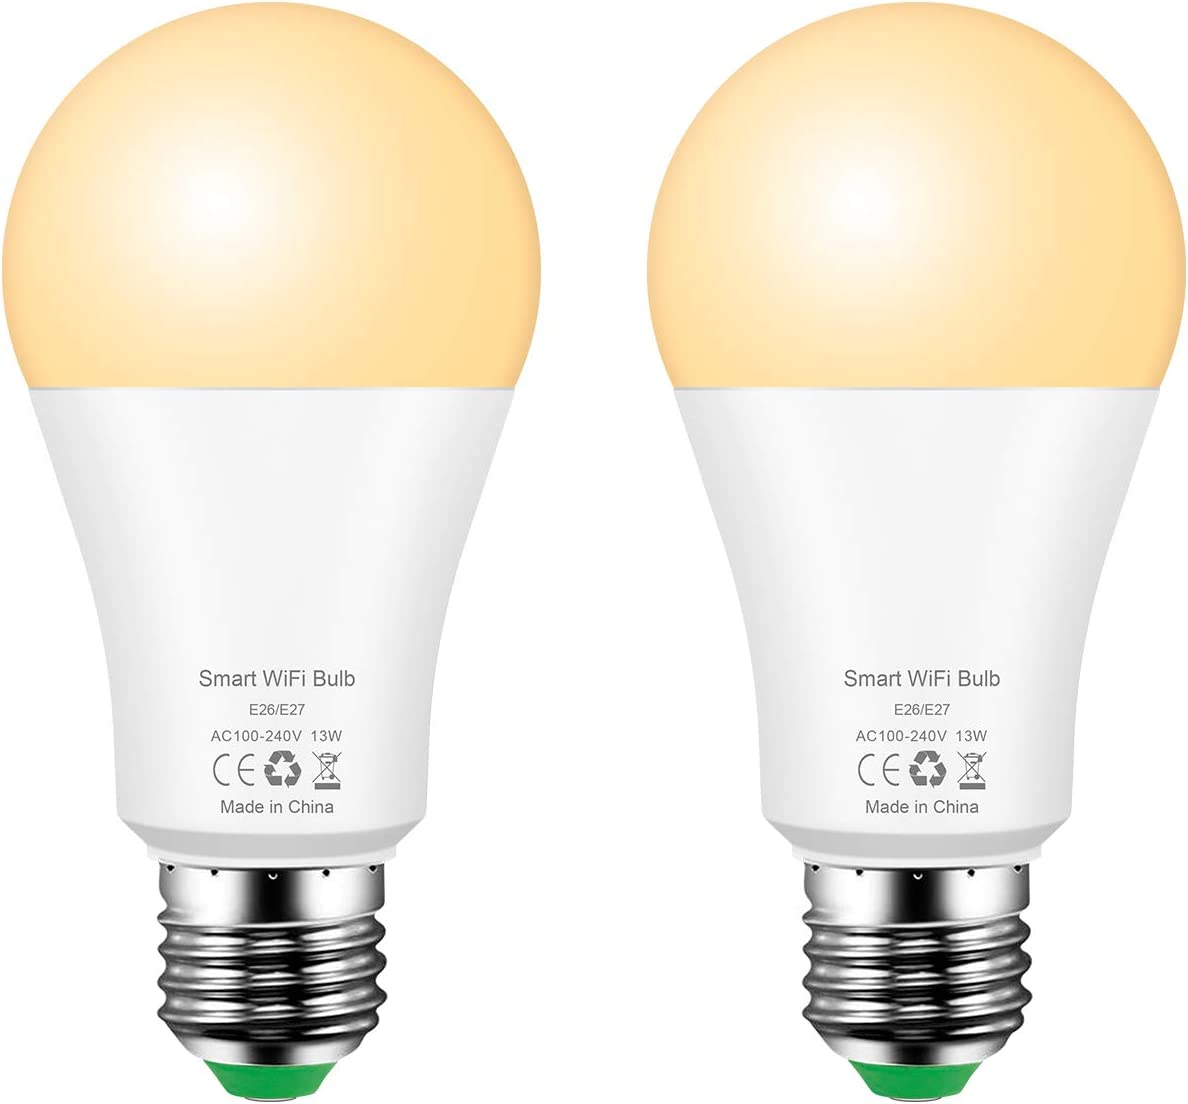 Smart Light Bulb 13W E26 LED WiFi Bulbs Warm White 2700K Compatible with Alexa and Google Home Assistant, A19 Bulbs 100W Equivalent (2 Pack)